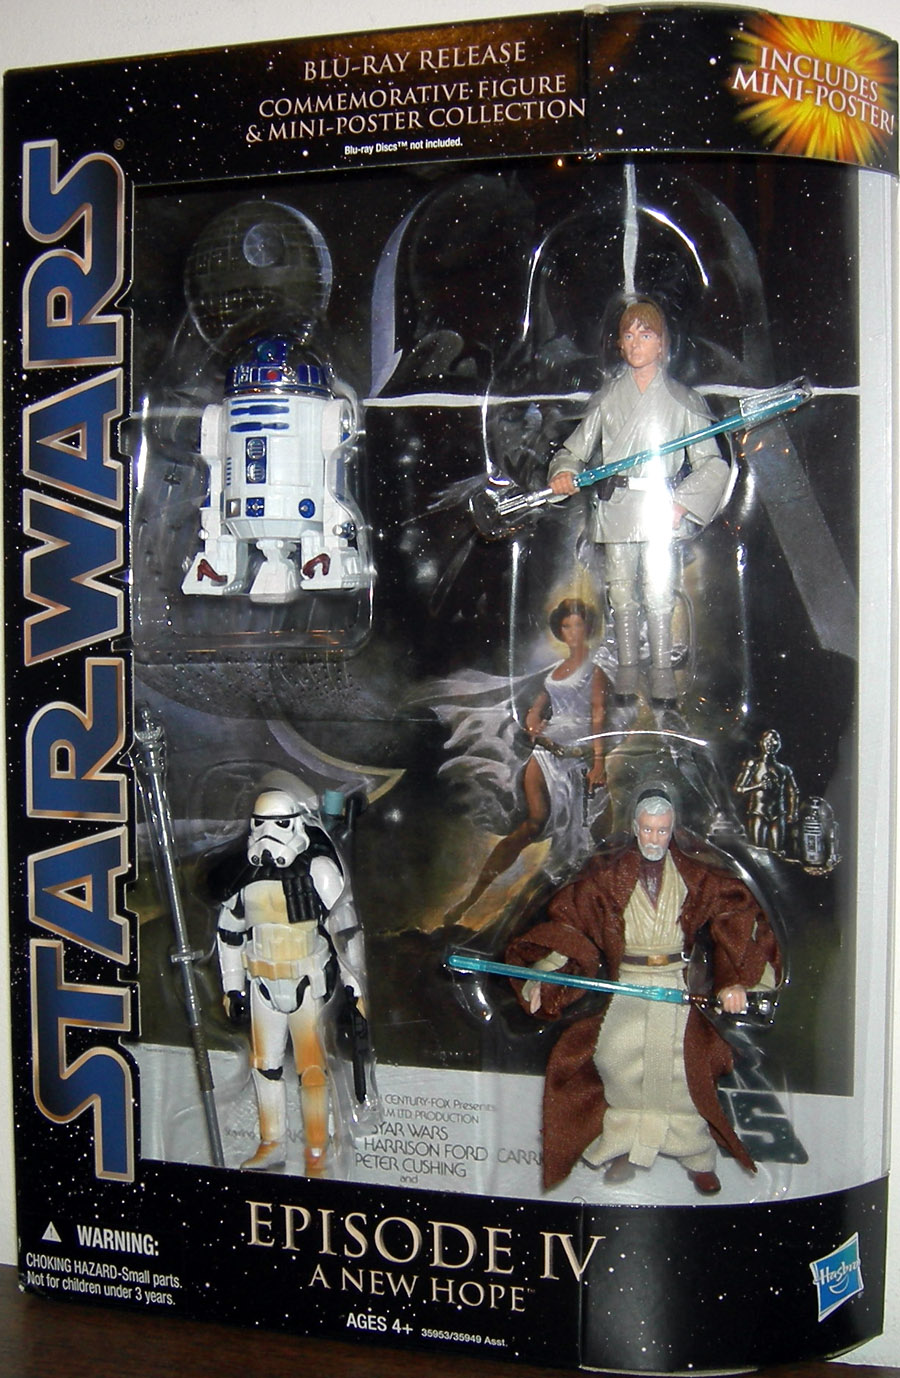 Star Wars Blu-Ray Release Commemorative Figure Set Episode IV